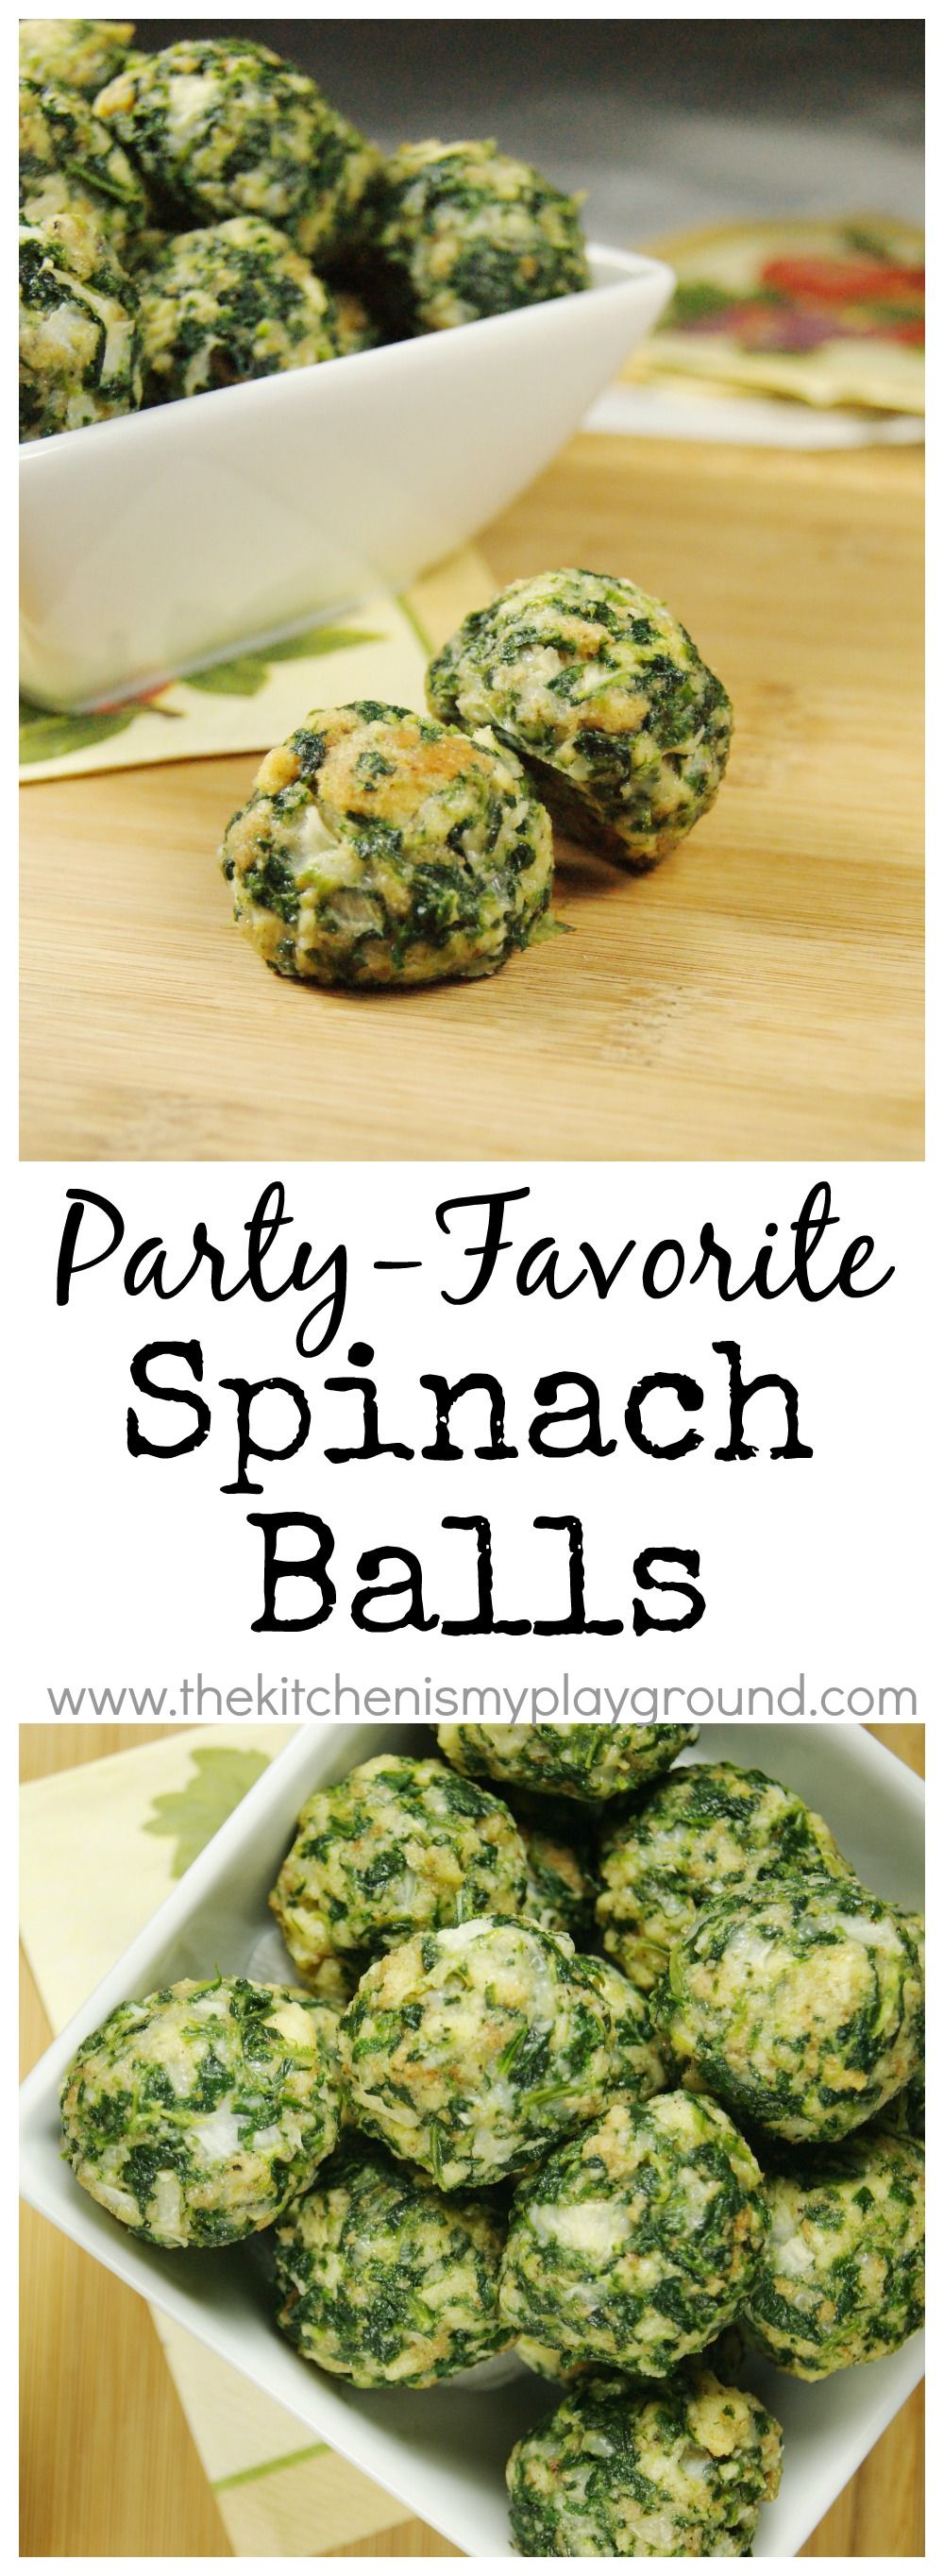 Spinach Balls ~ they're party-perfect!  Can be made ahead & frozen, too. www.thekitchenismyplayground.com